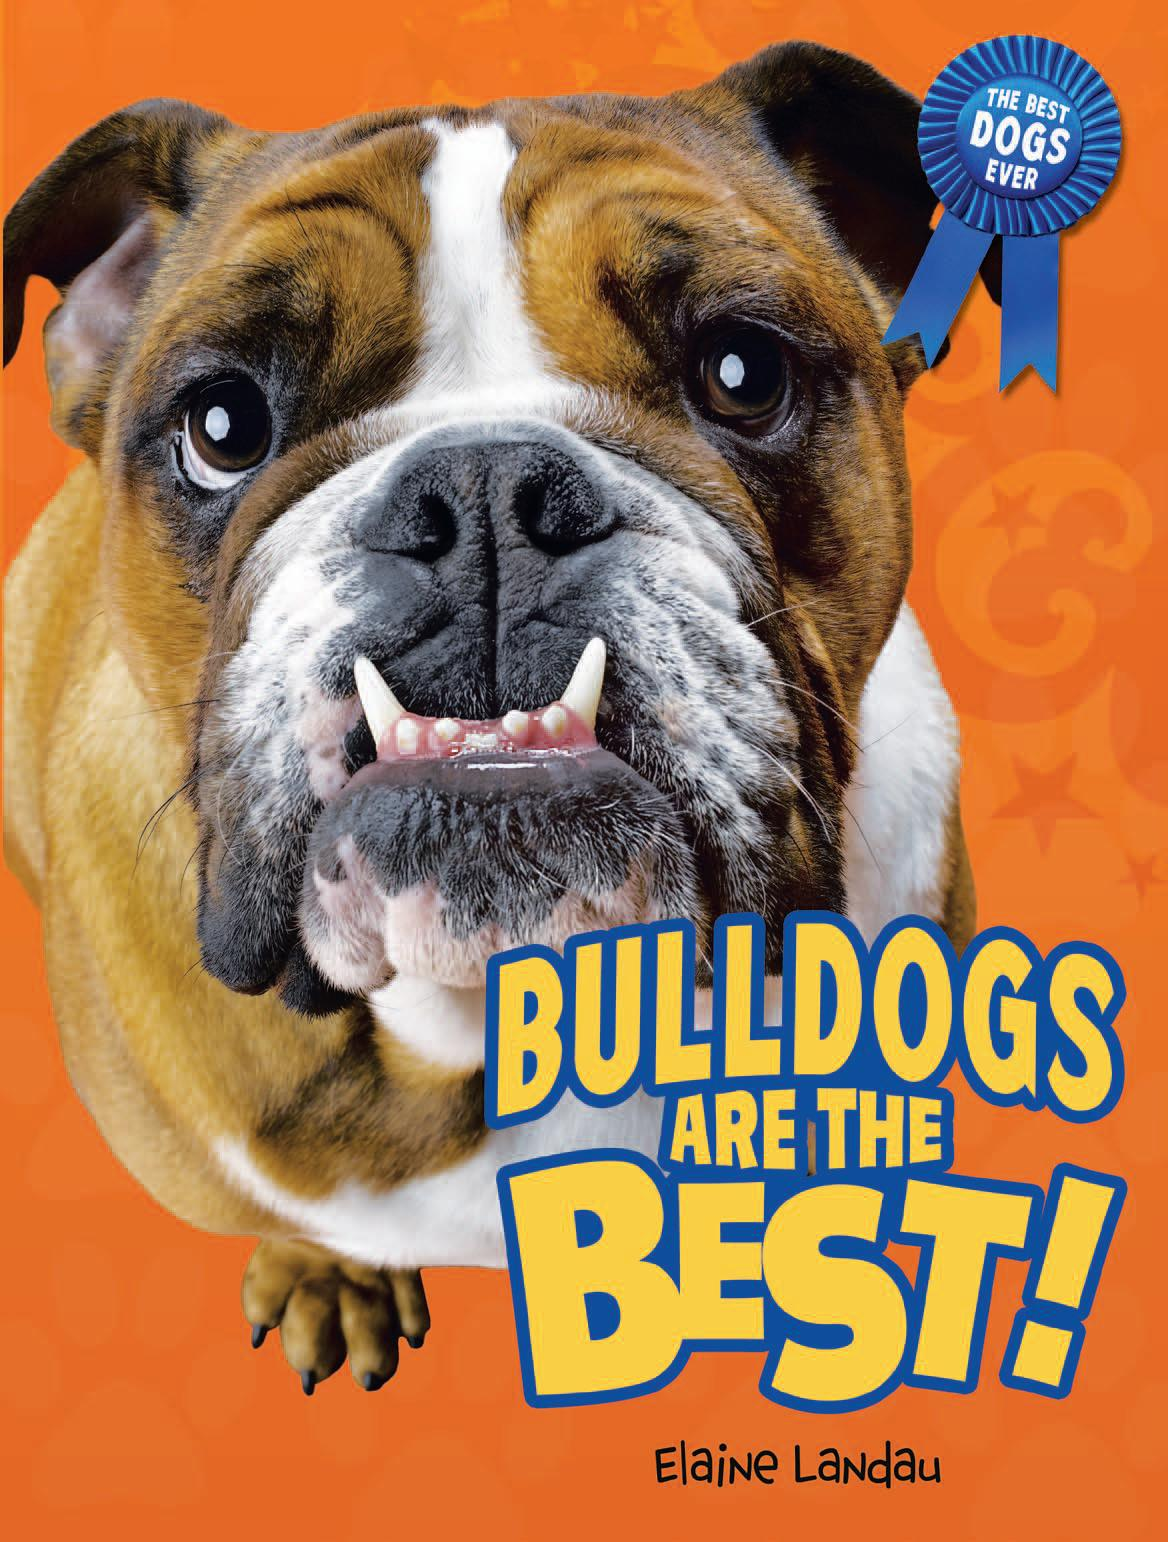 Bulldogs Are the Best! (The Best Dogs Ever) free download